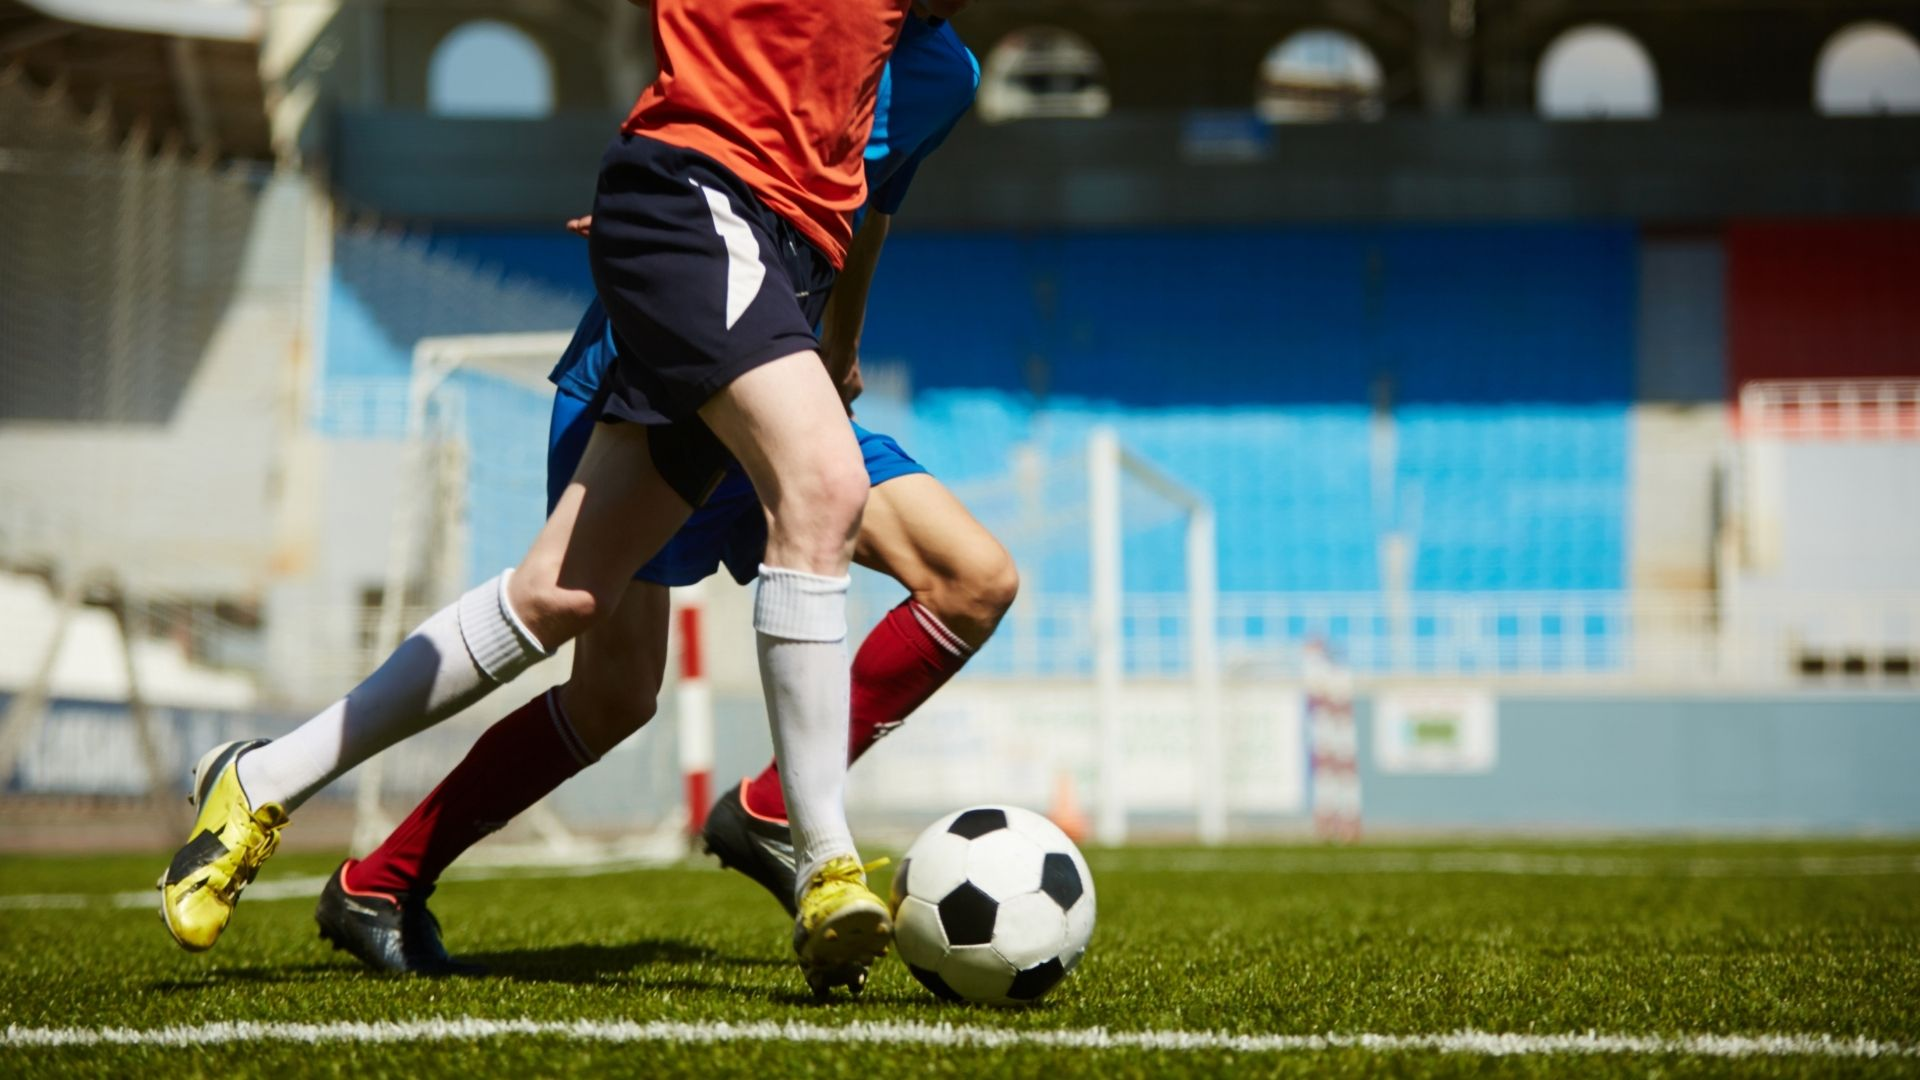 4 Reasons FootStock May Be the Best Football Betting Platform for You